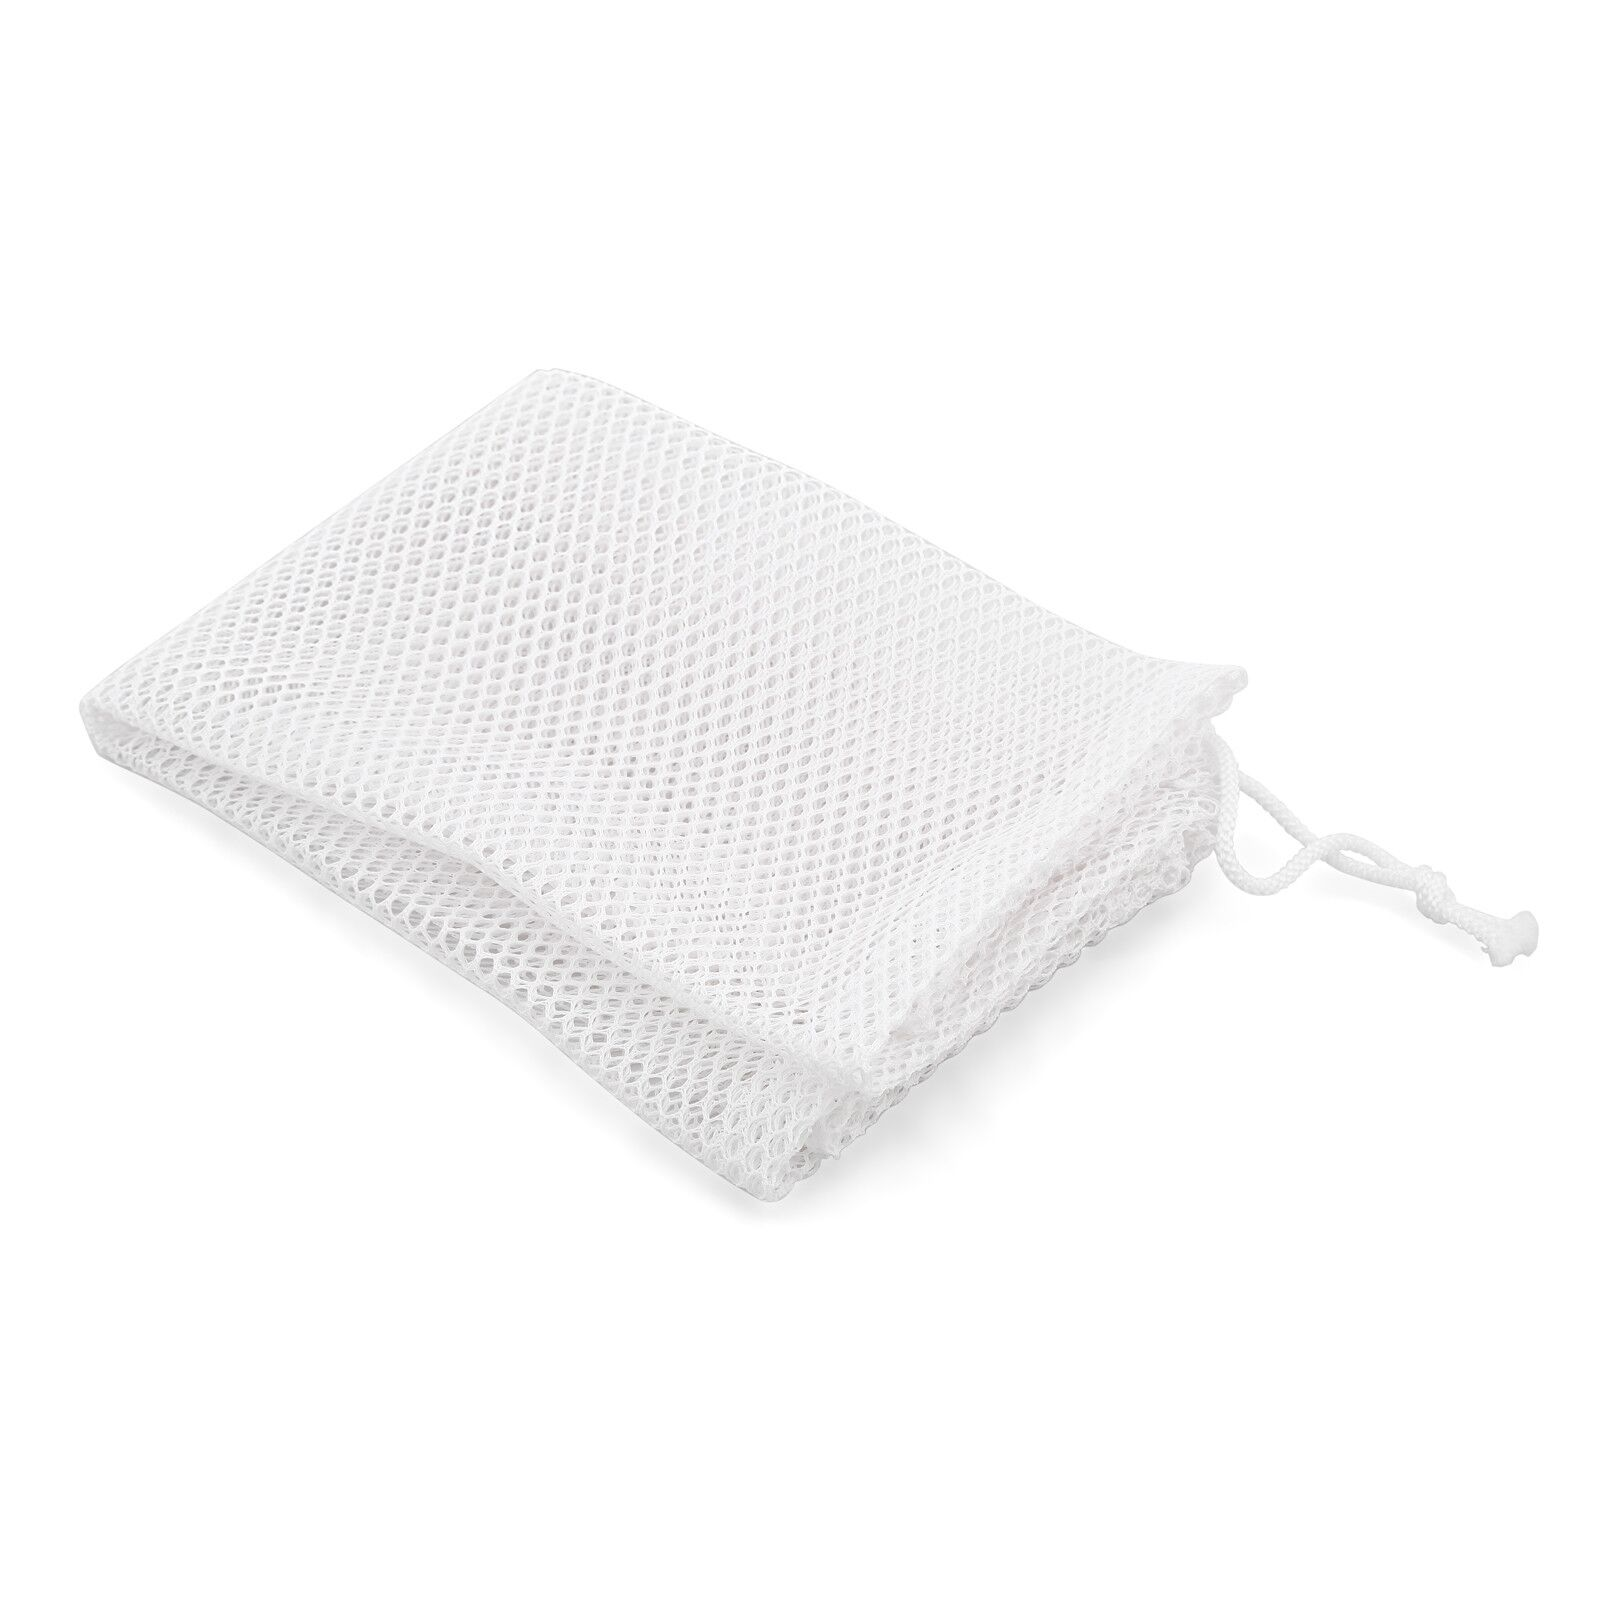 ADA - Mesh Bag - Super Jet Filter